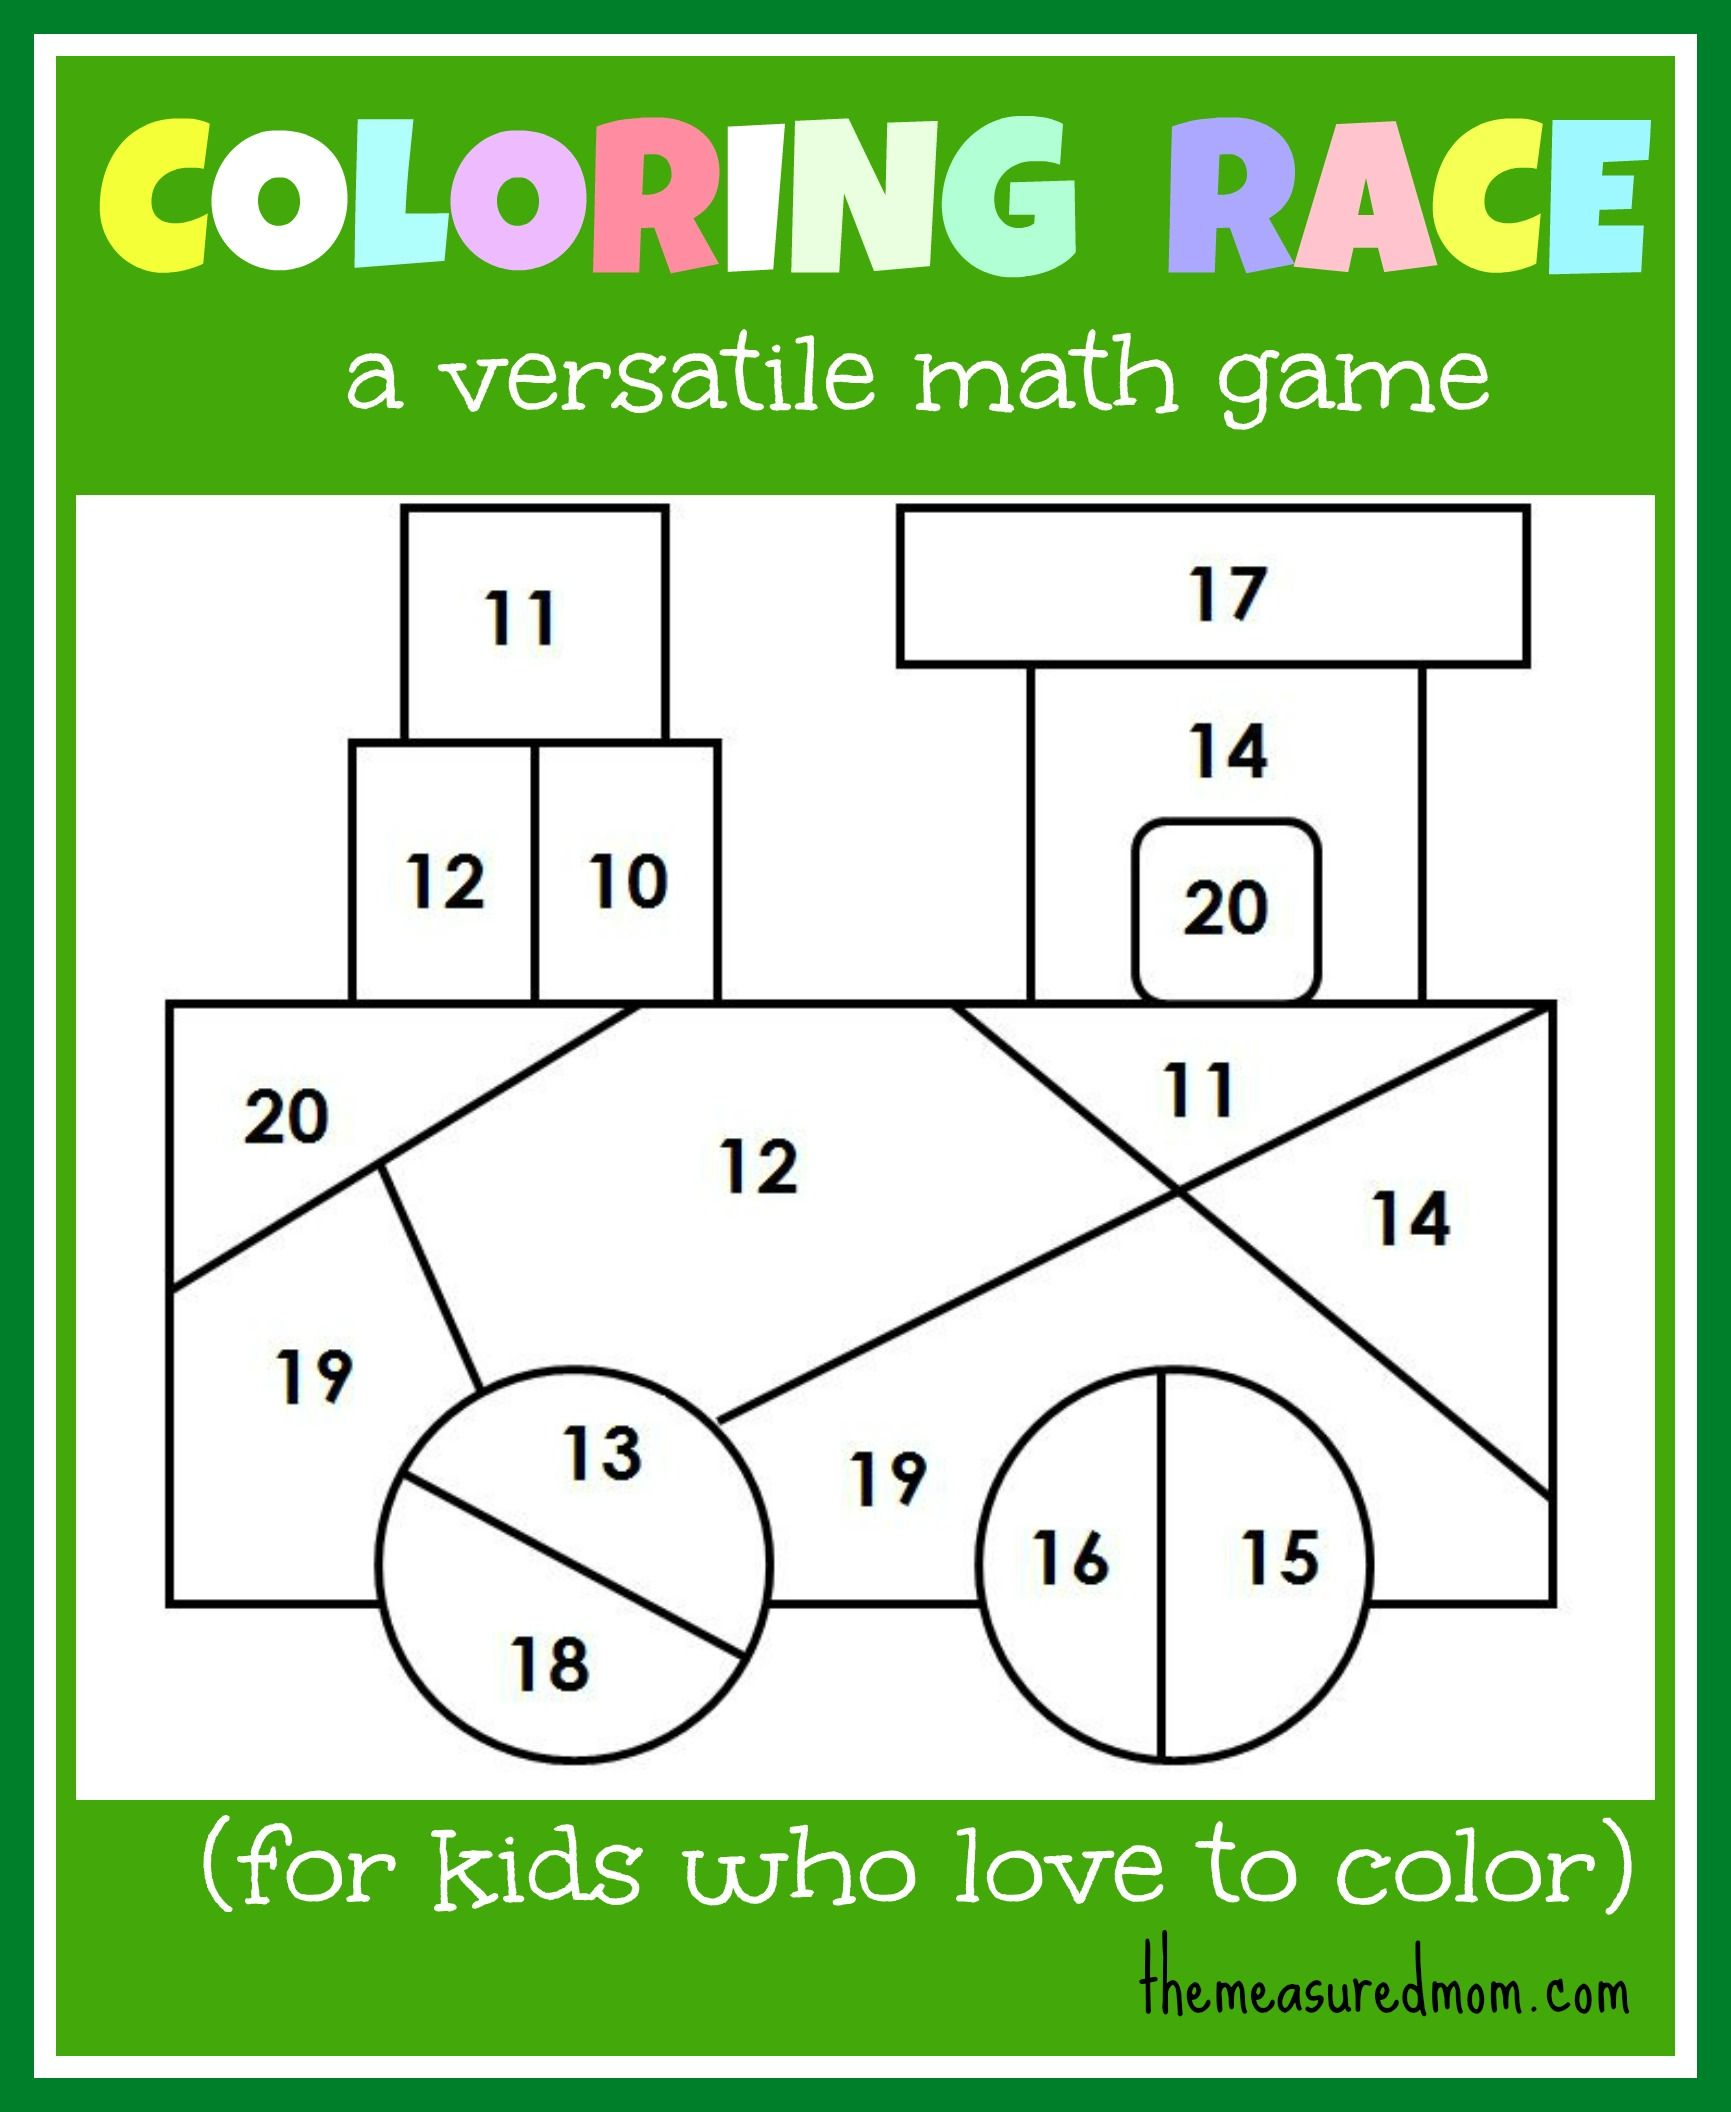 Math Game For Kids Coloring Race Combines Math And Coloring The Measured Mom Math Activities Preschool Printable Math Games Math Games For Kids Addition worksheets online game